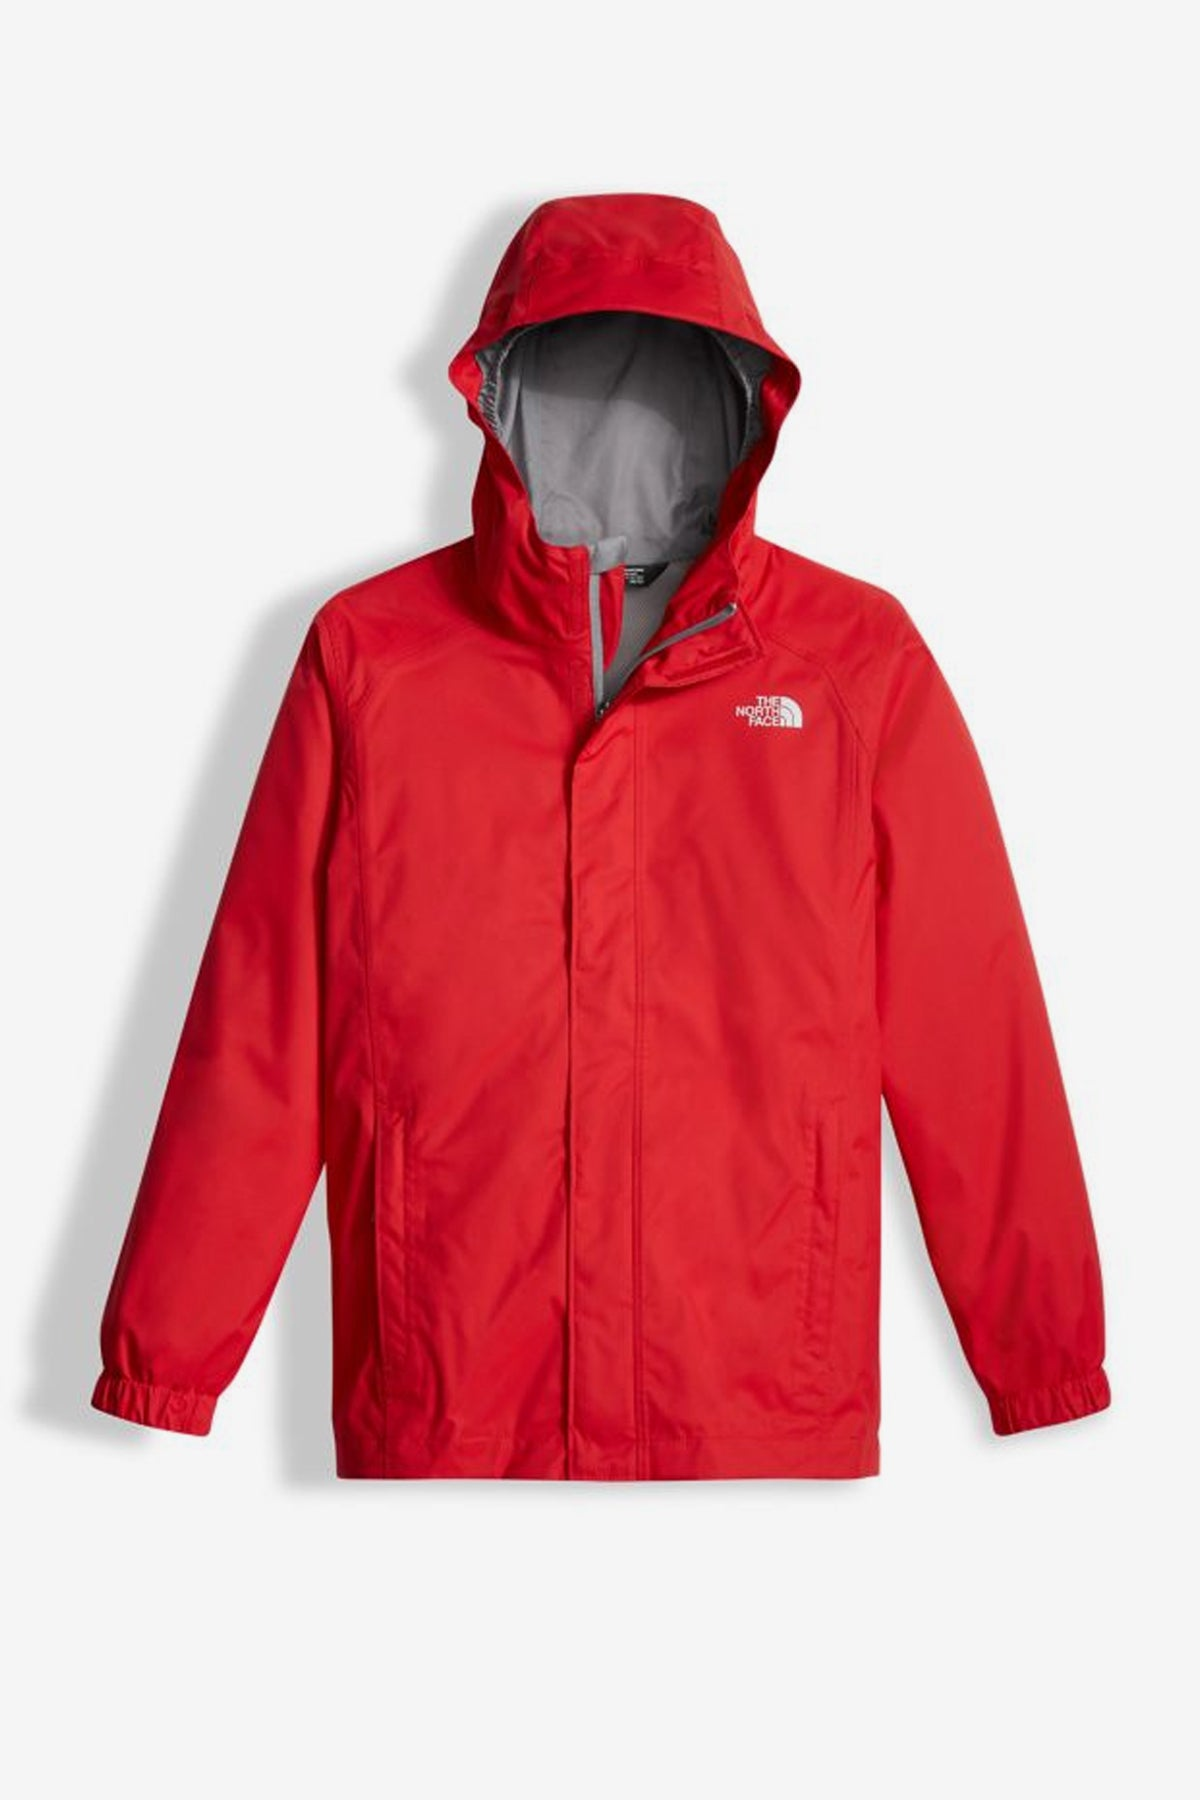 The North Face Resolve Reflective Kids Rain Jacket Red